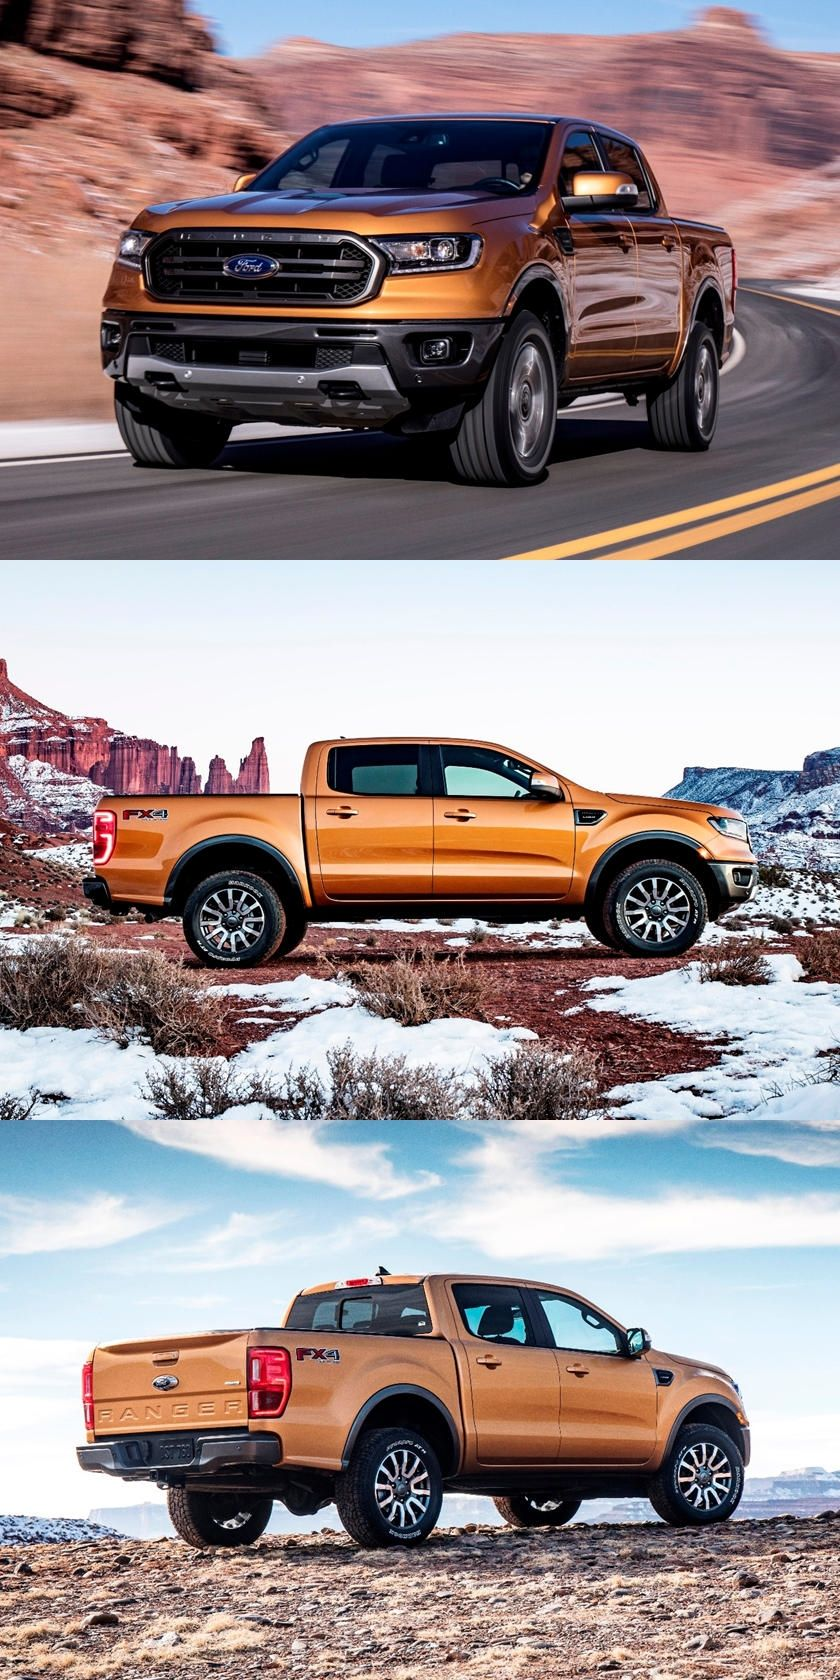 Ford Maverick Will Have A Core Truck Feature Just Like Its Ranger And F 150 Big Brothers In 2020 Ford Maverick Ford Truck Ford Ranger